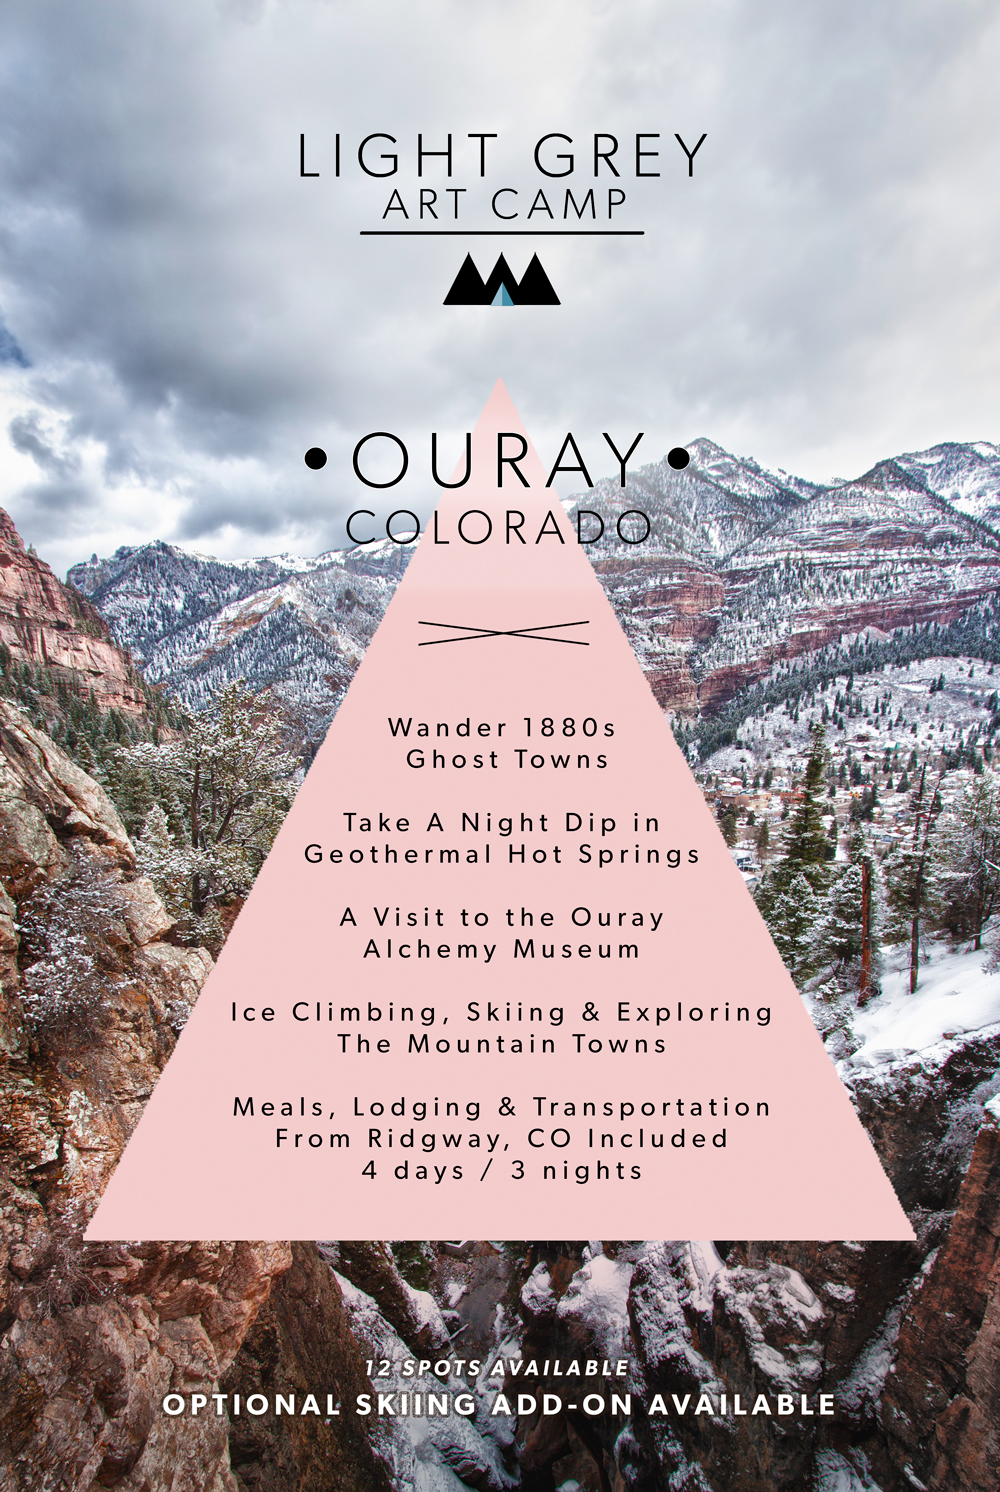 Join us for Light Grey Art Camp in Ouray, Colorado!